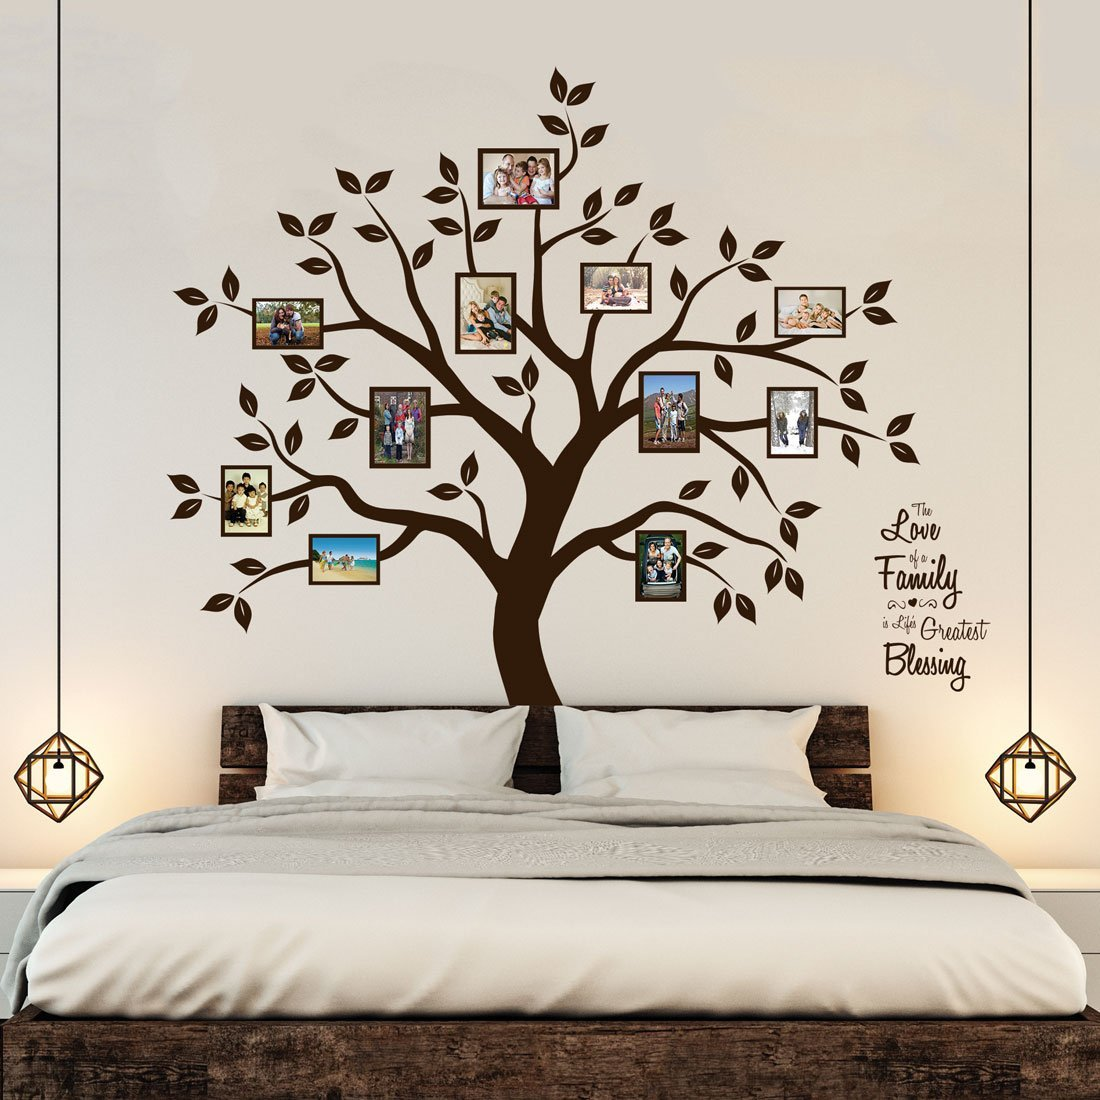 Bedroom Wall Art Trees Best 3 Bedroom Wall Decals Sticker For Mural Ideas Homeindec